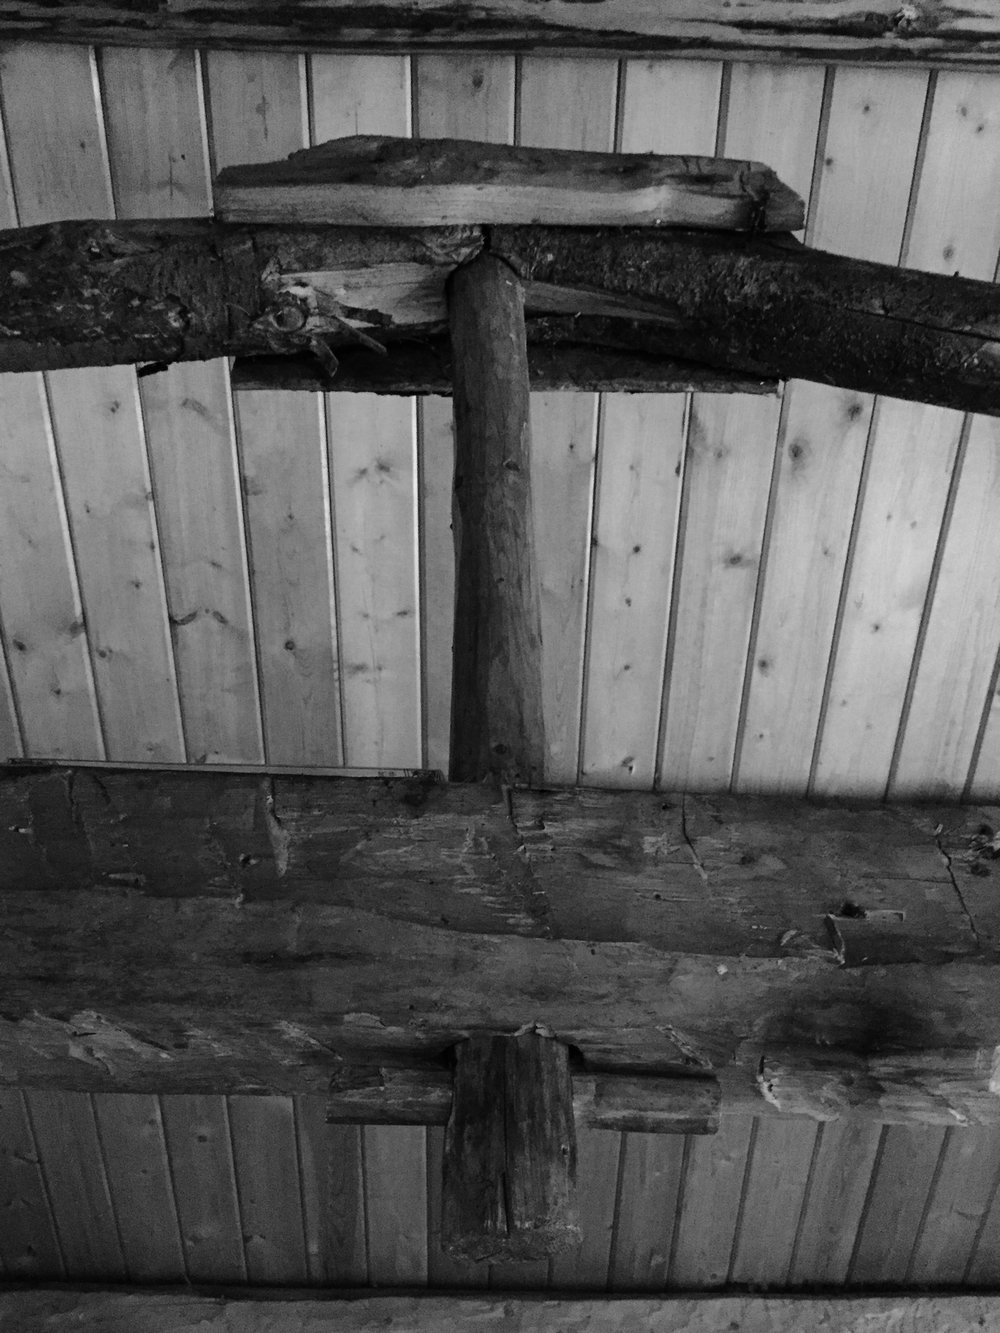 Tie beam and trunnel in the Big Indian Creek cabin